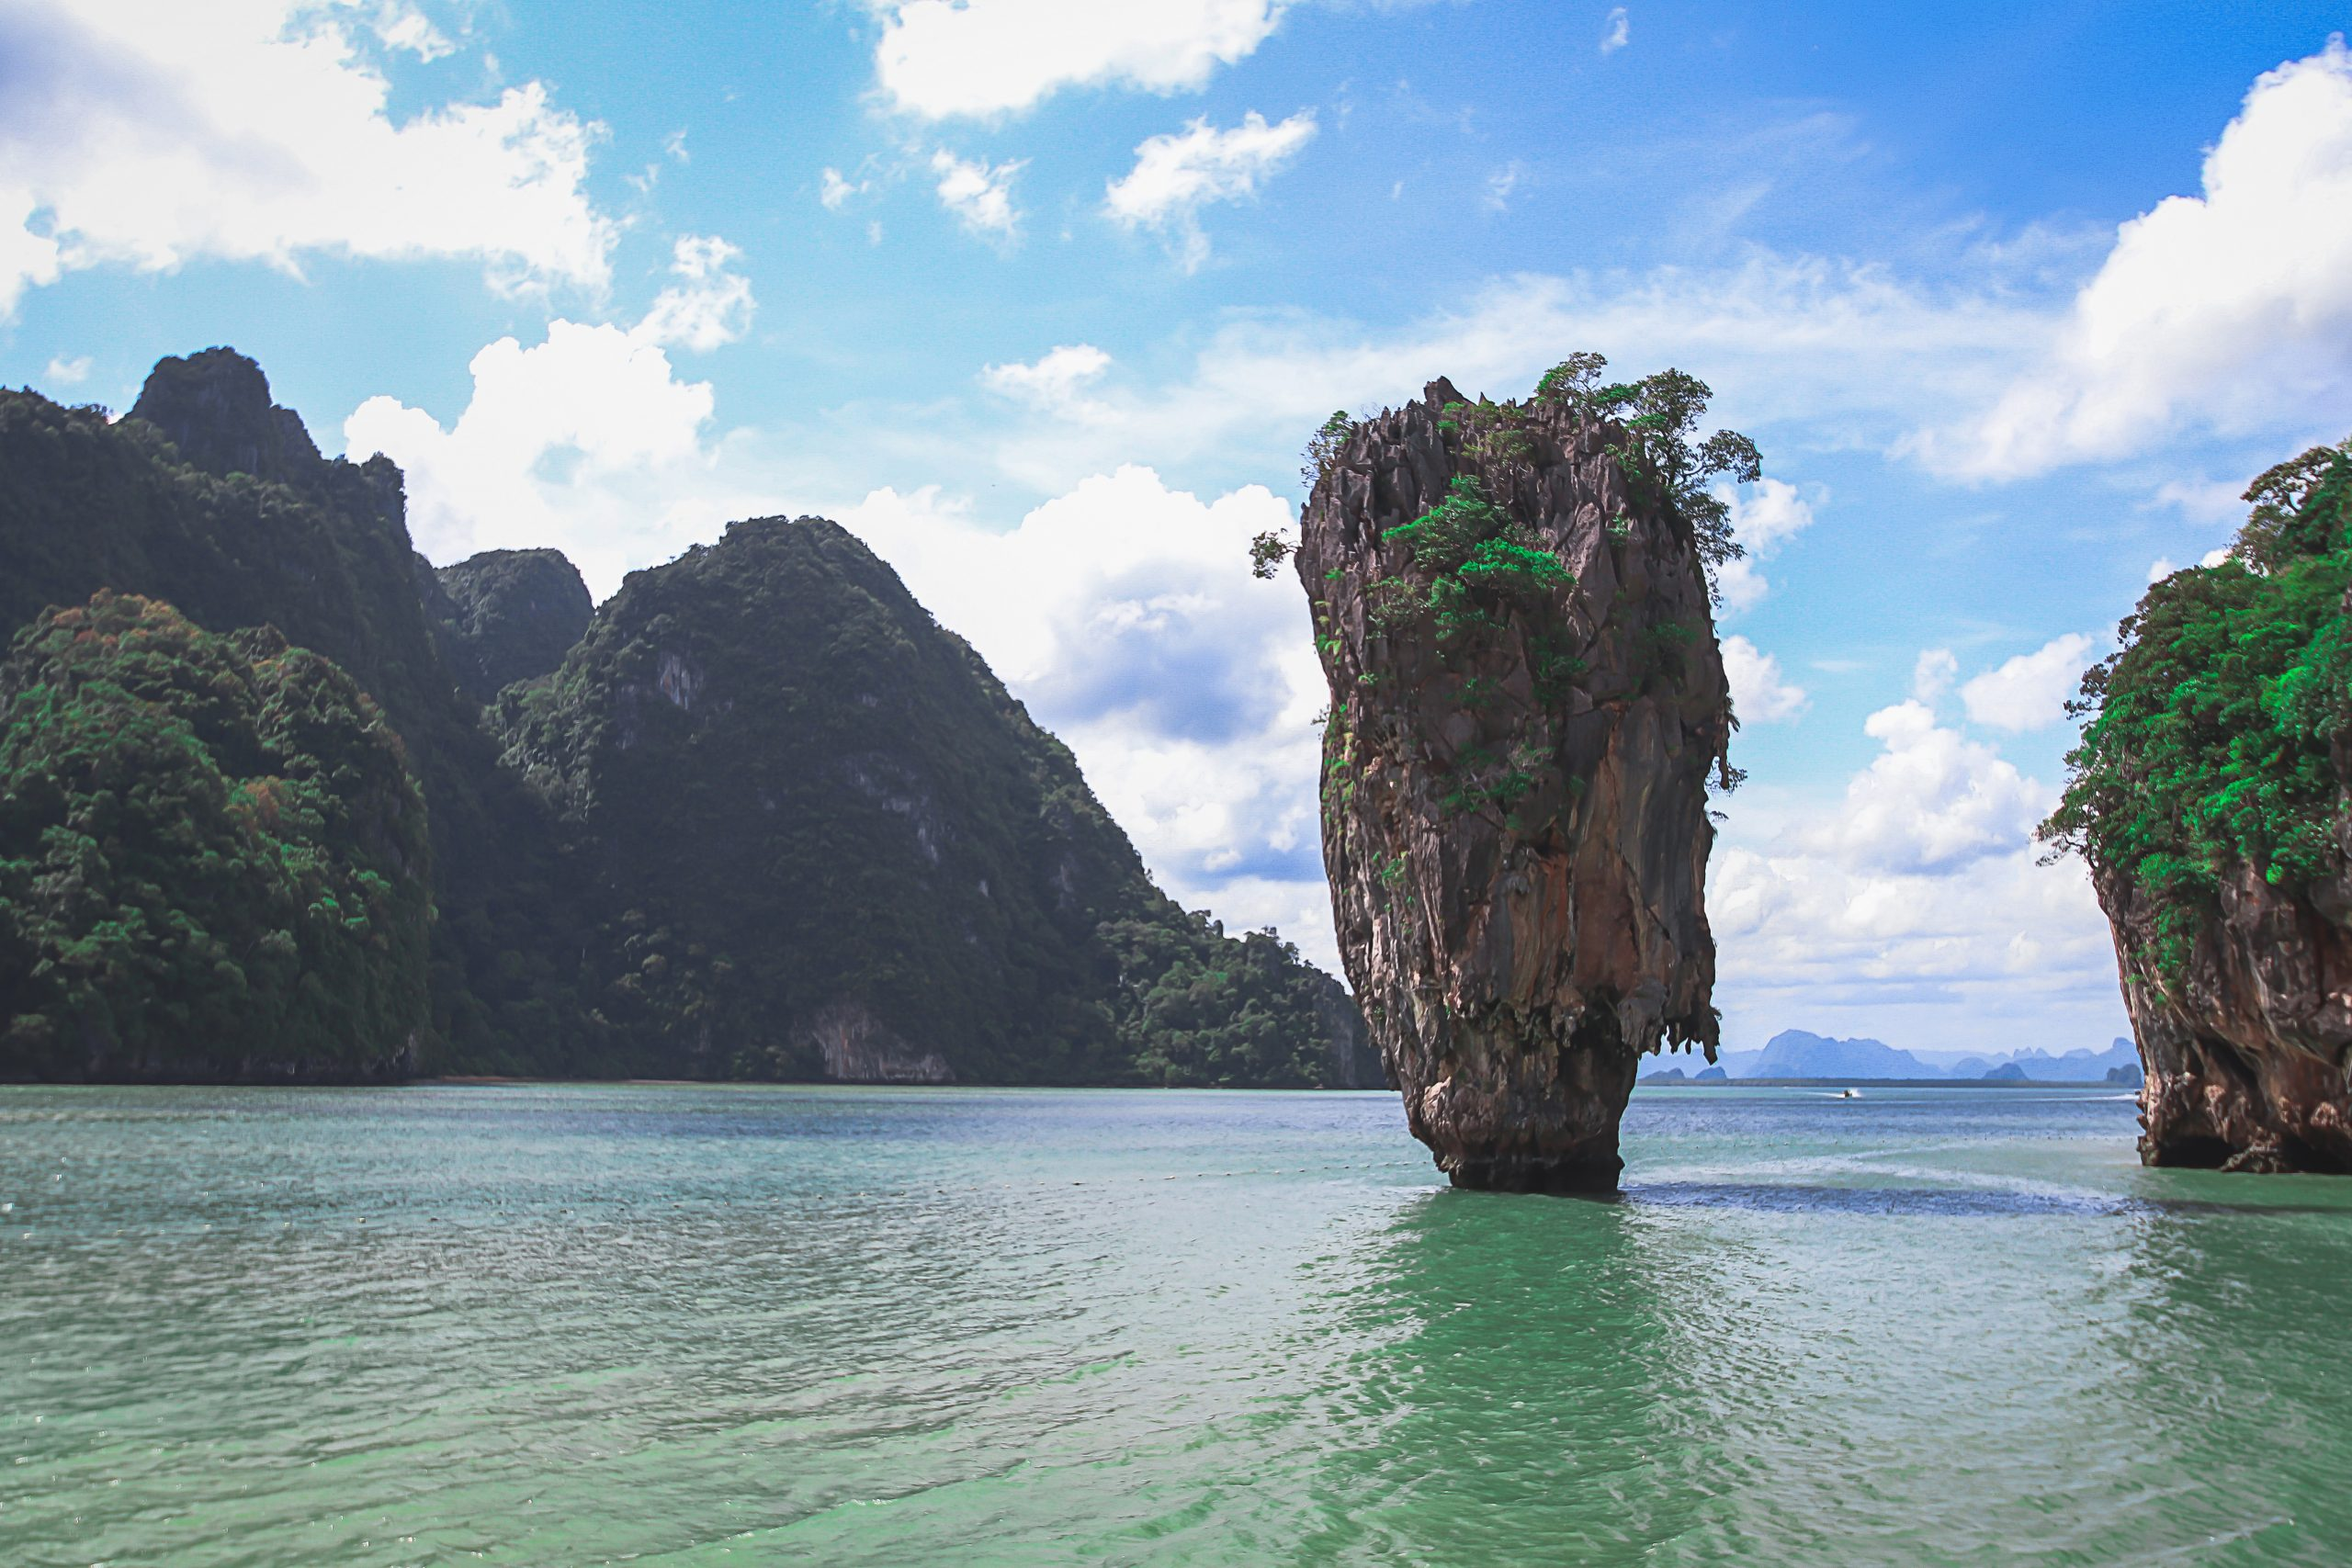 James Bond Islands Phuket Tour Packages Cheap Phuket